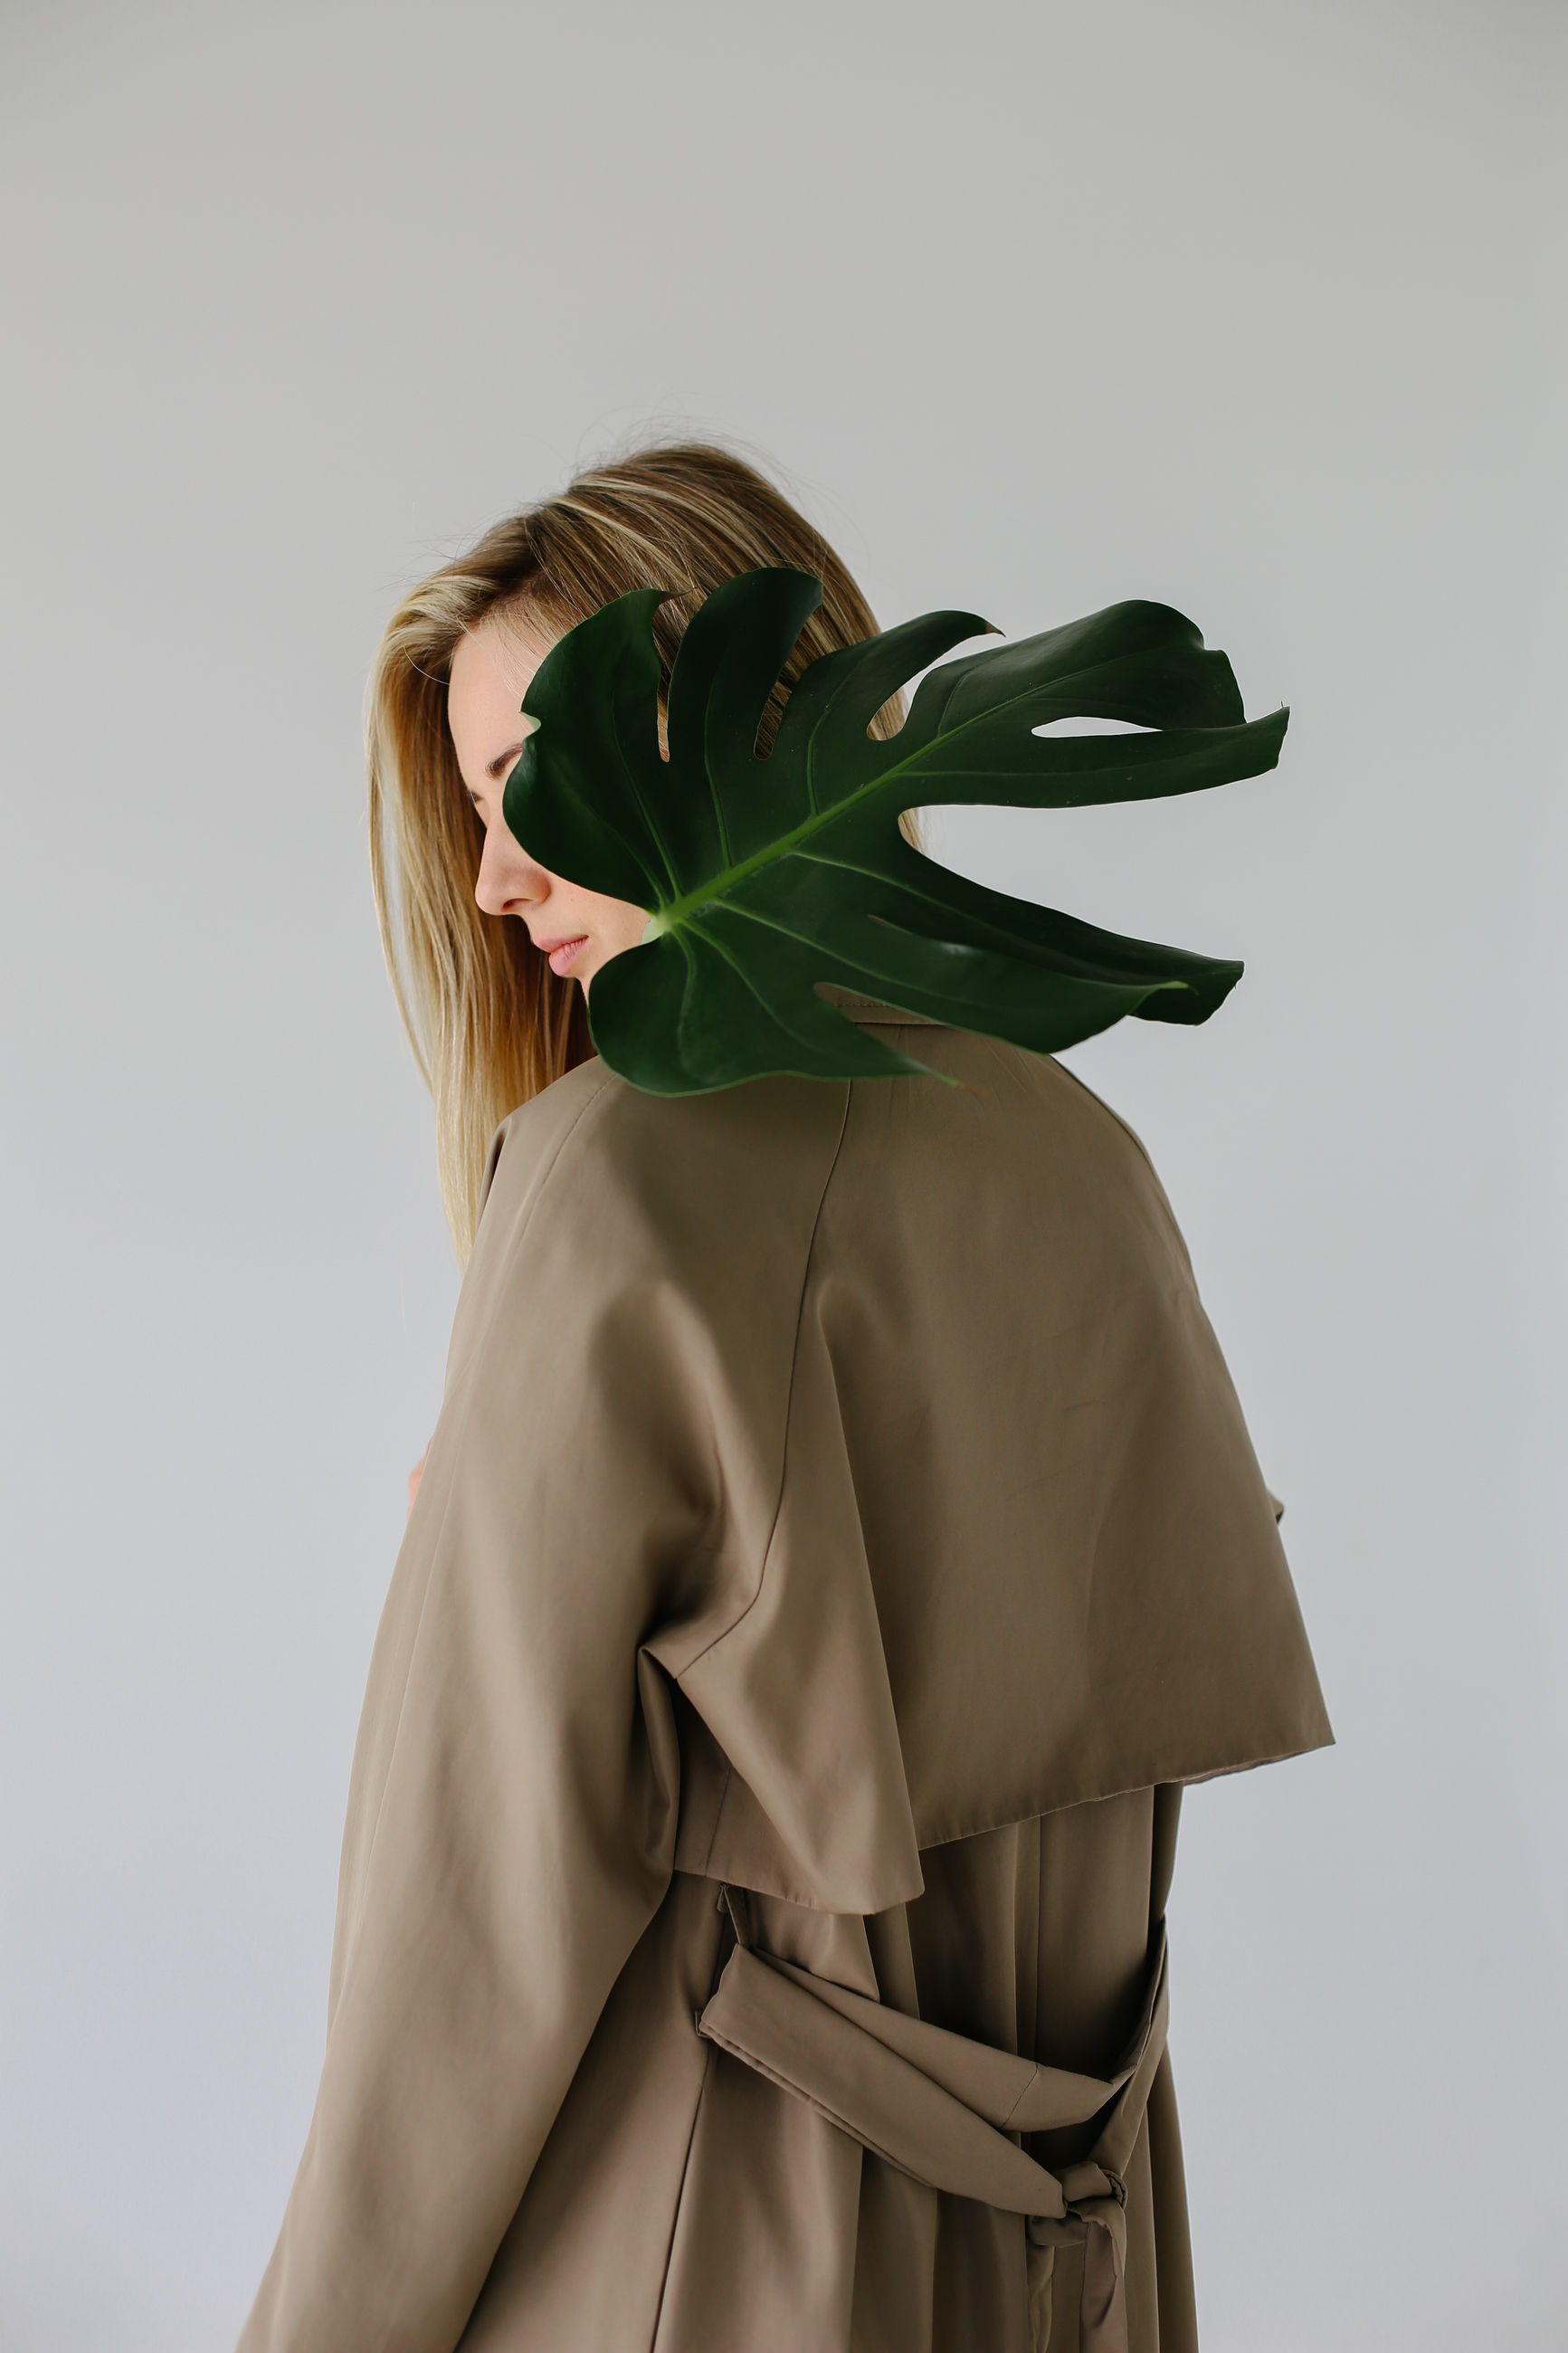 studio shot, one person, indoors, women, standing, adult, clothing, lifestyles, plant, white background, holding, rear view, hairstyle, young adult, hair, leisure activity, leaf, casual clothing, plant part, obscured face, scarf